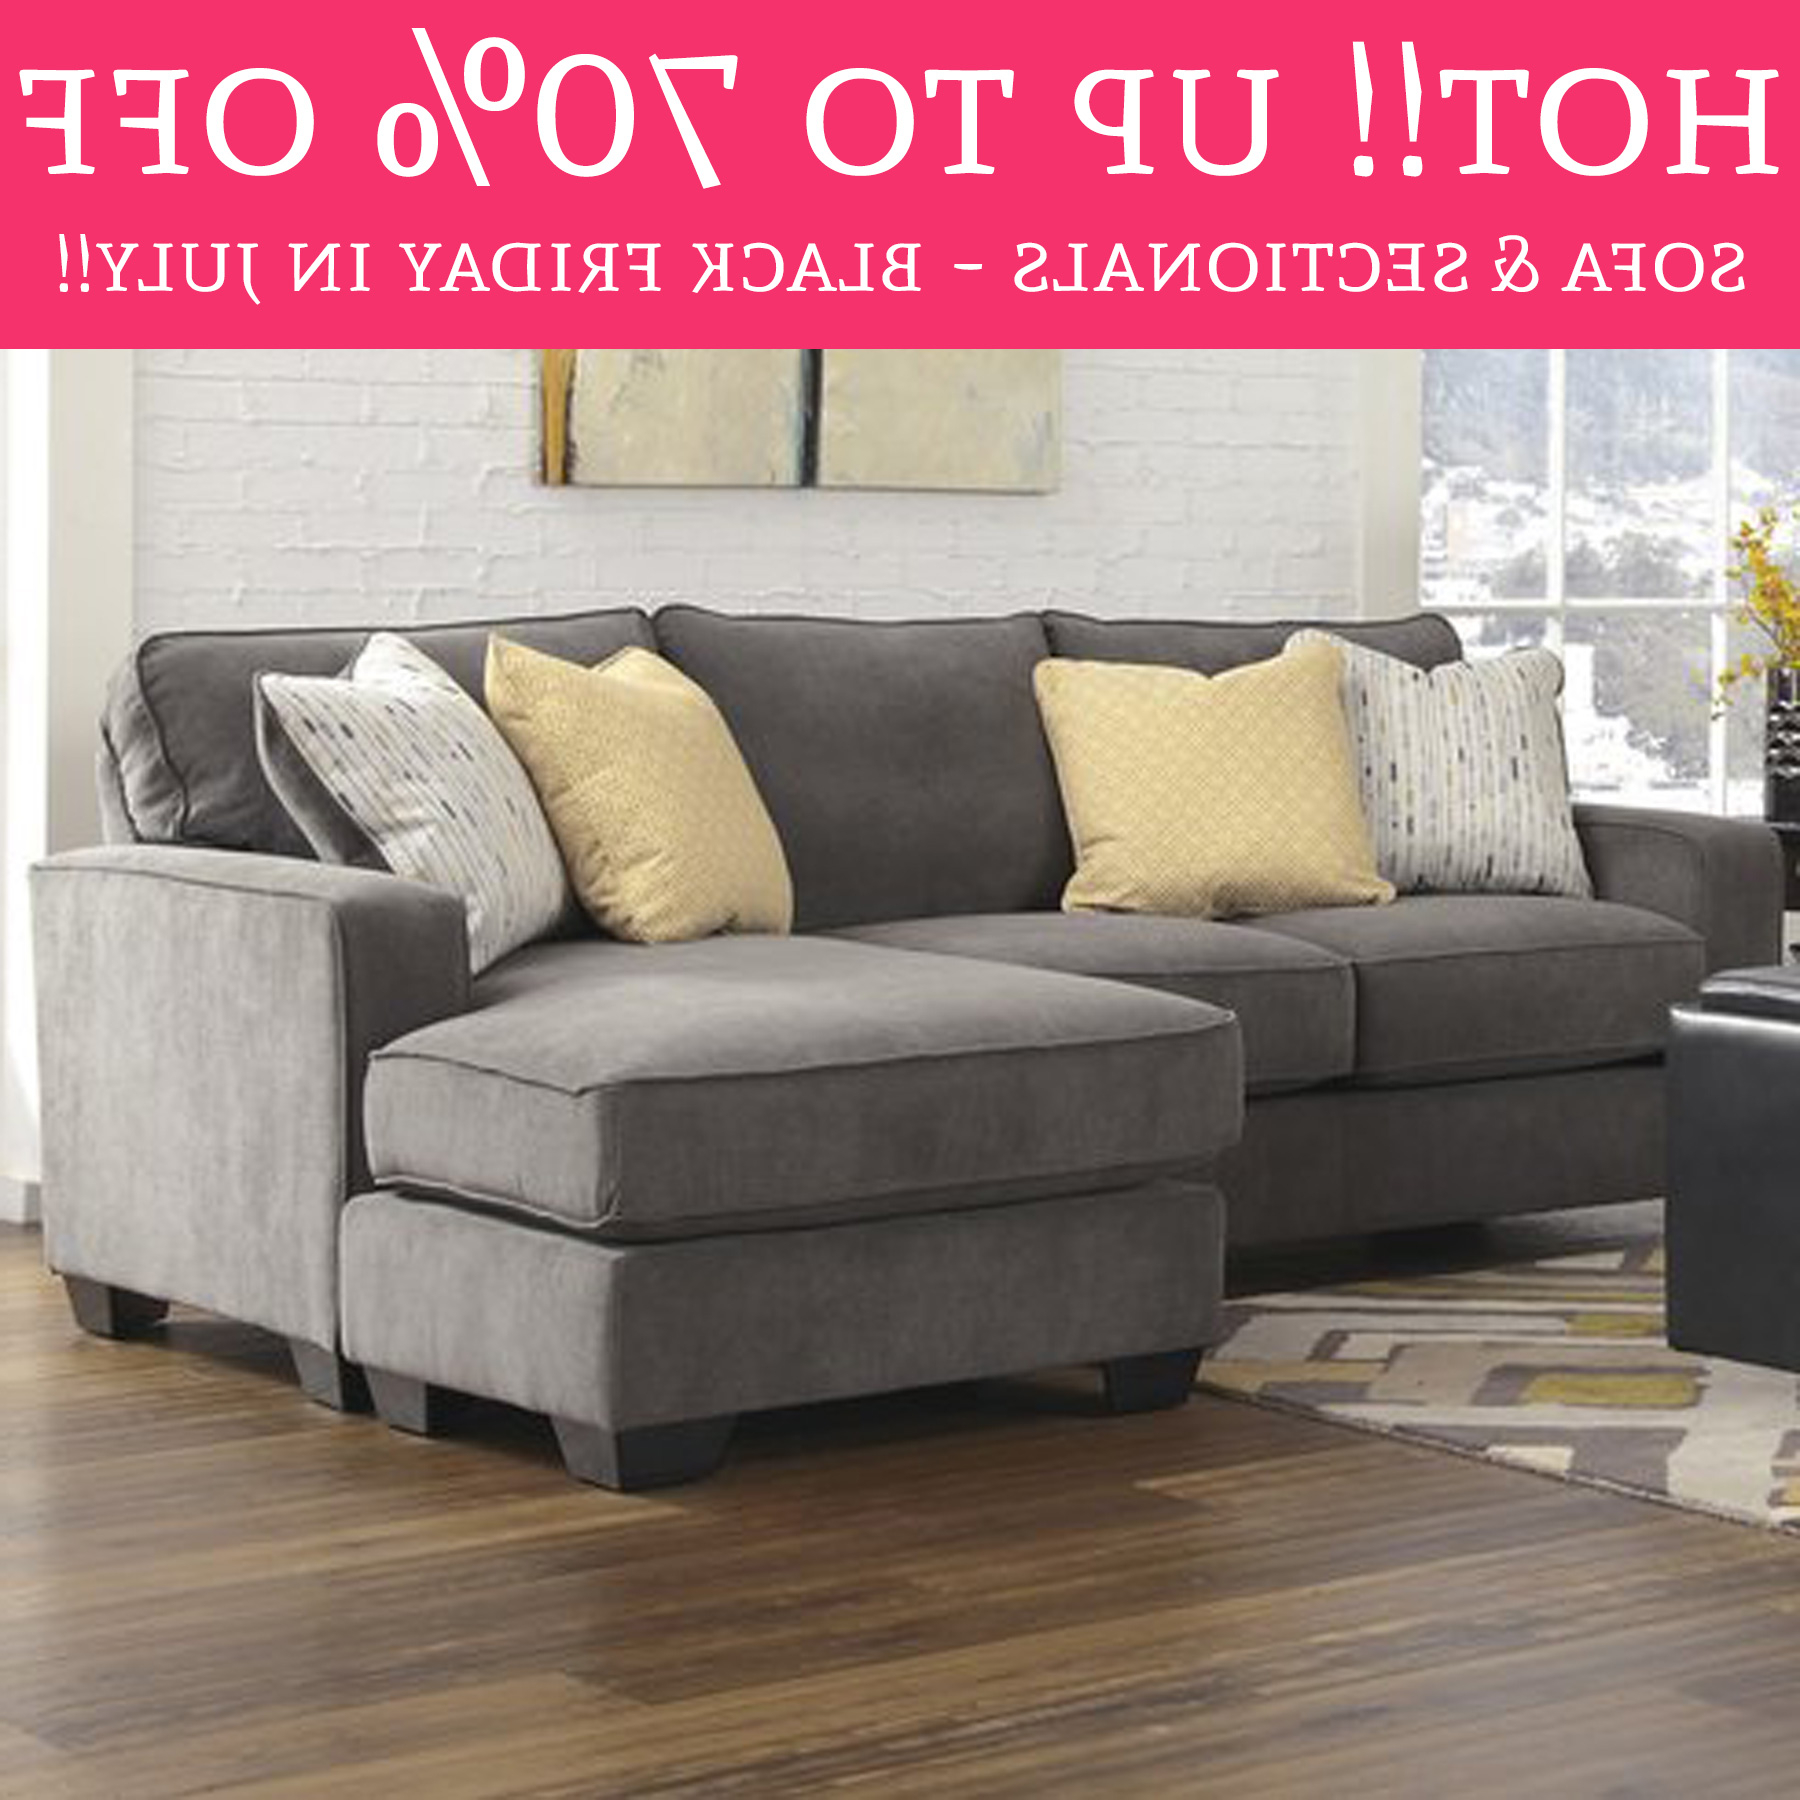 Sofa Black Friday Nkde Hot Black Friday In July Up to 70 Off sofa Sectionals Deal